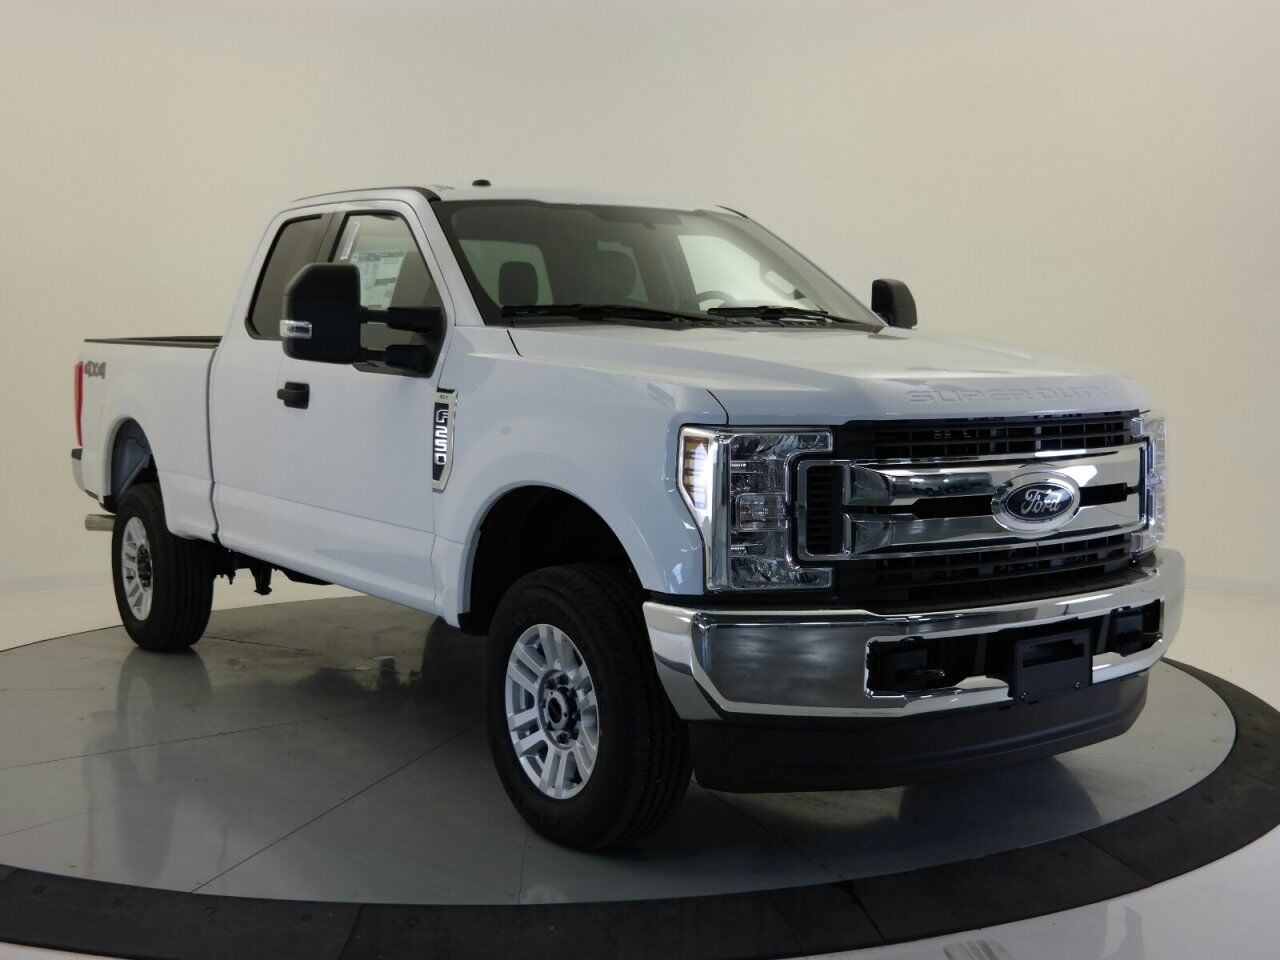 Ford X Plan Pricing >> New 2019 Ford Super Duty F-250 SRW XLT in Sherwood Park AB